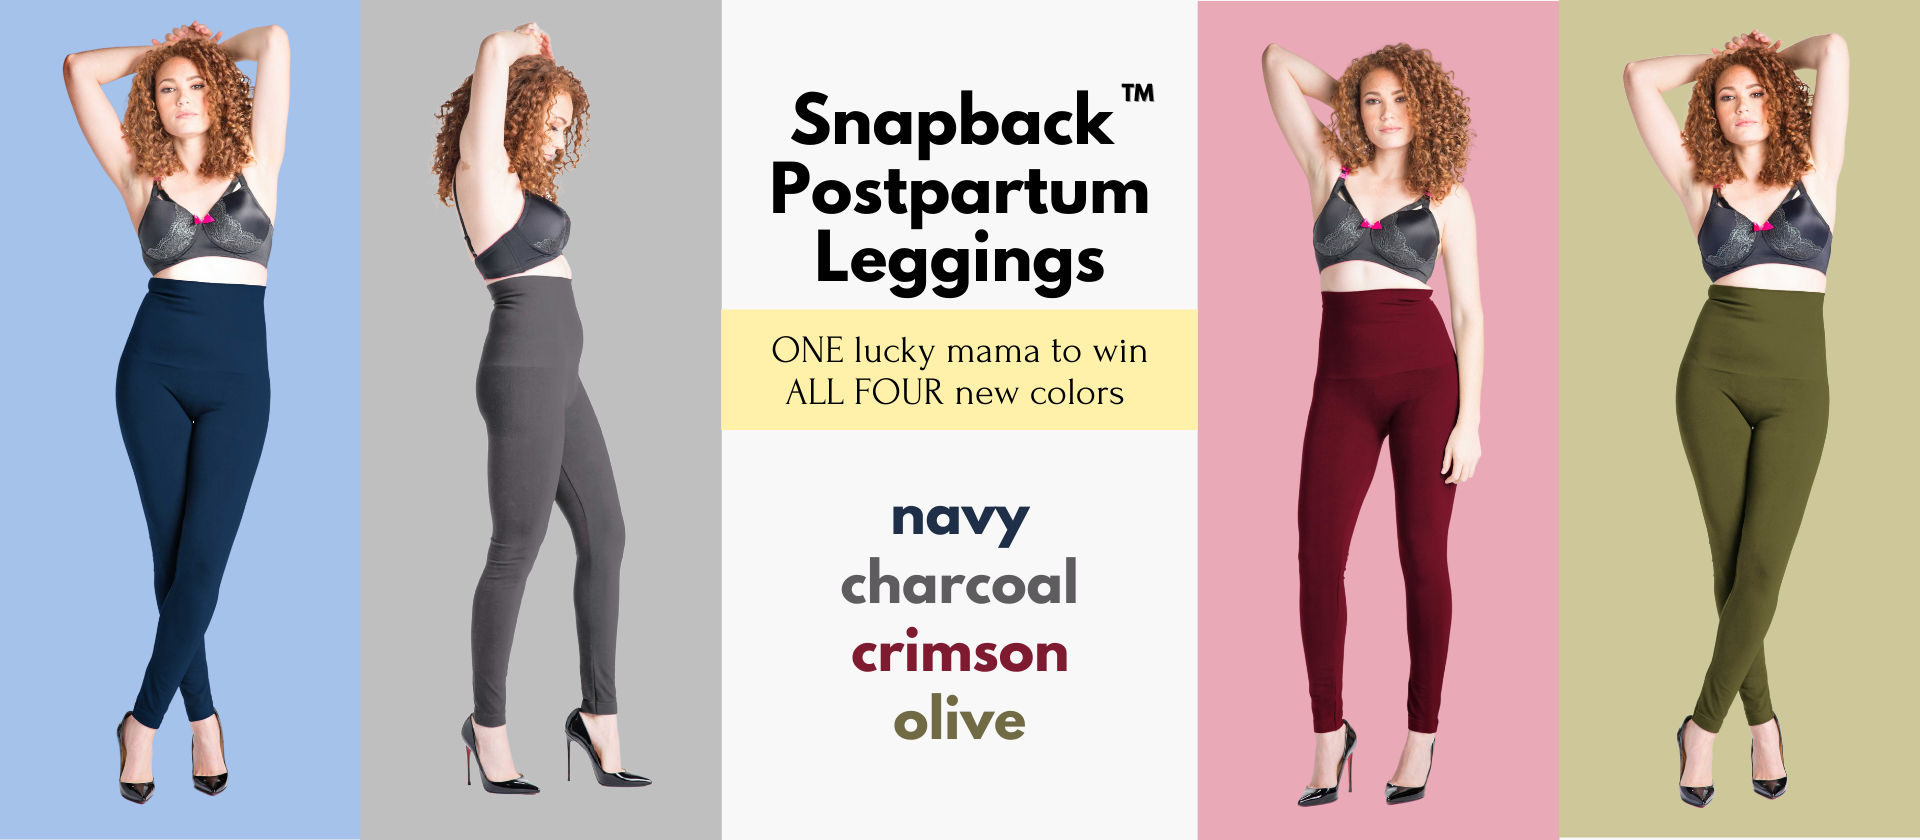 Snapback Postpartum Leggings - One lucky winner will get ALL FOUR new colors: Navy, Charcoal, Crimson, and Olive.